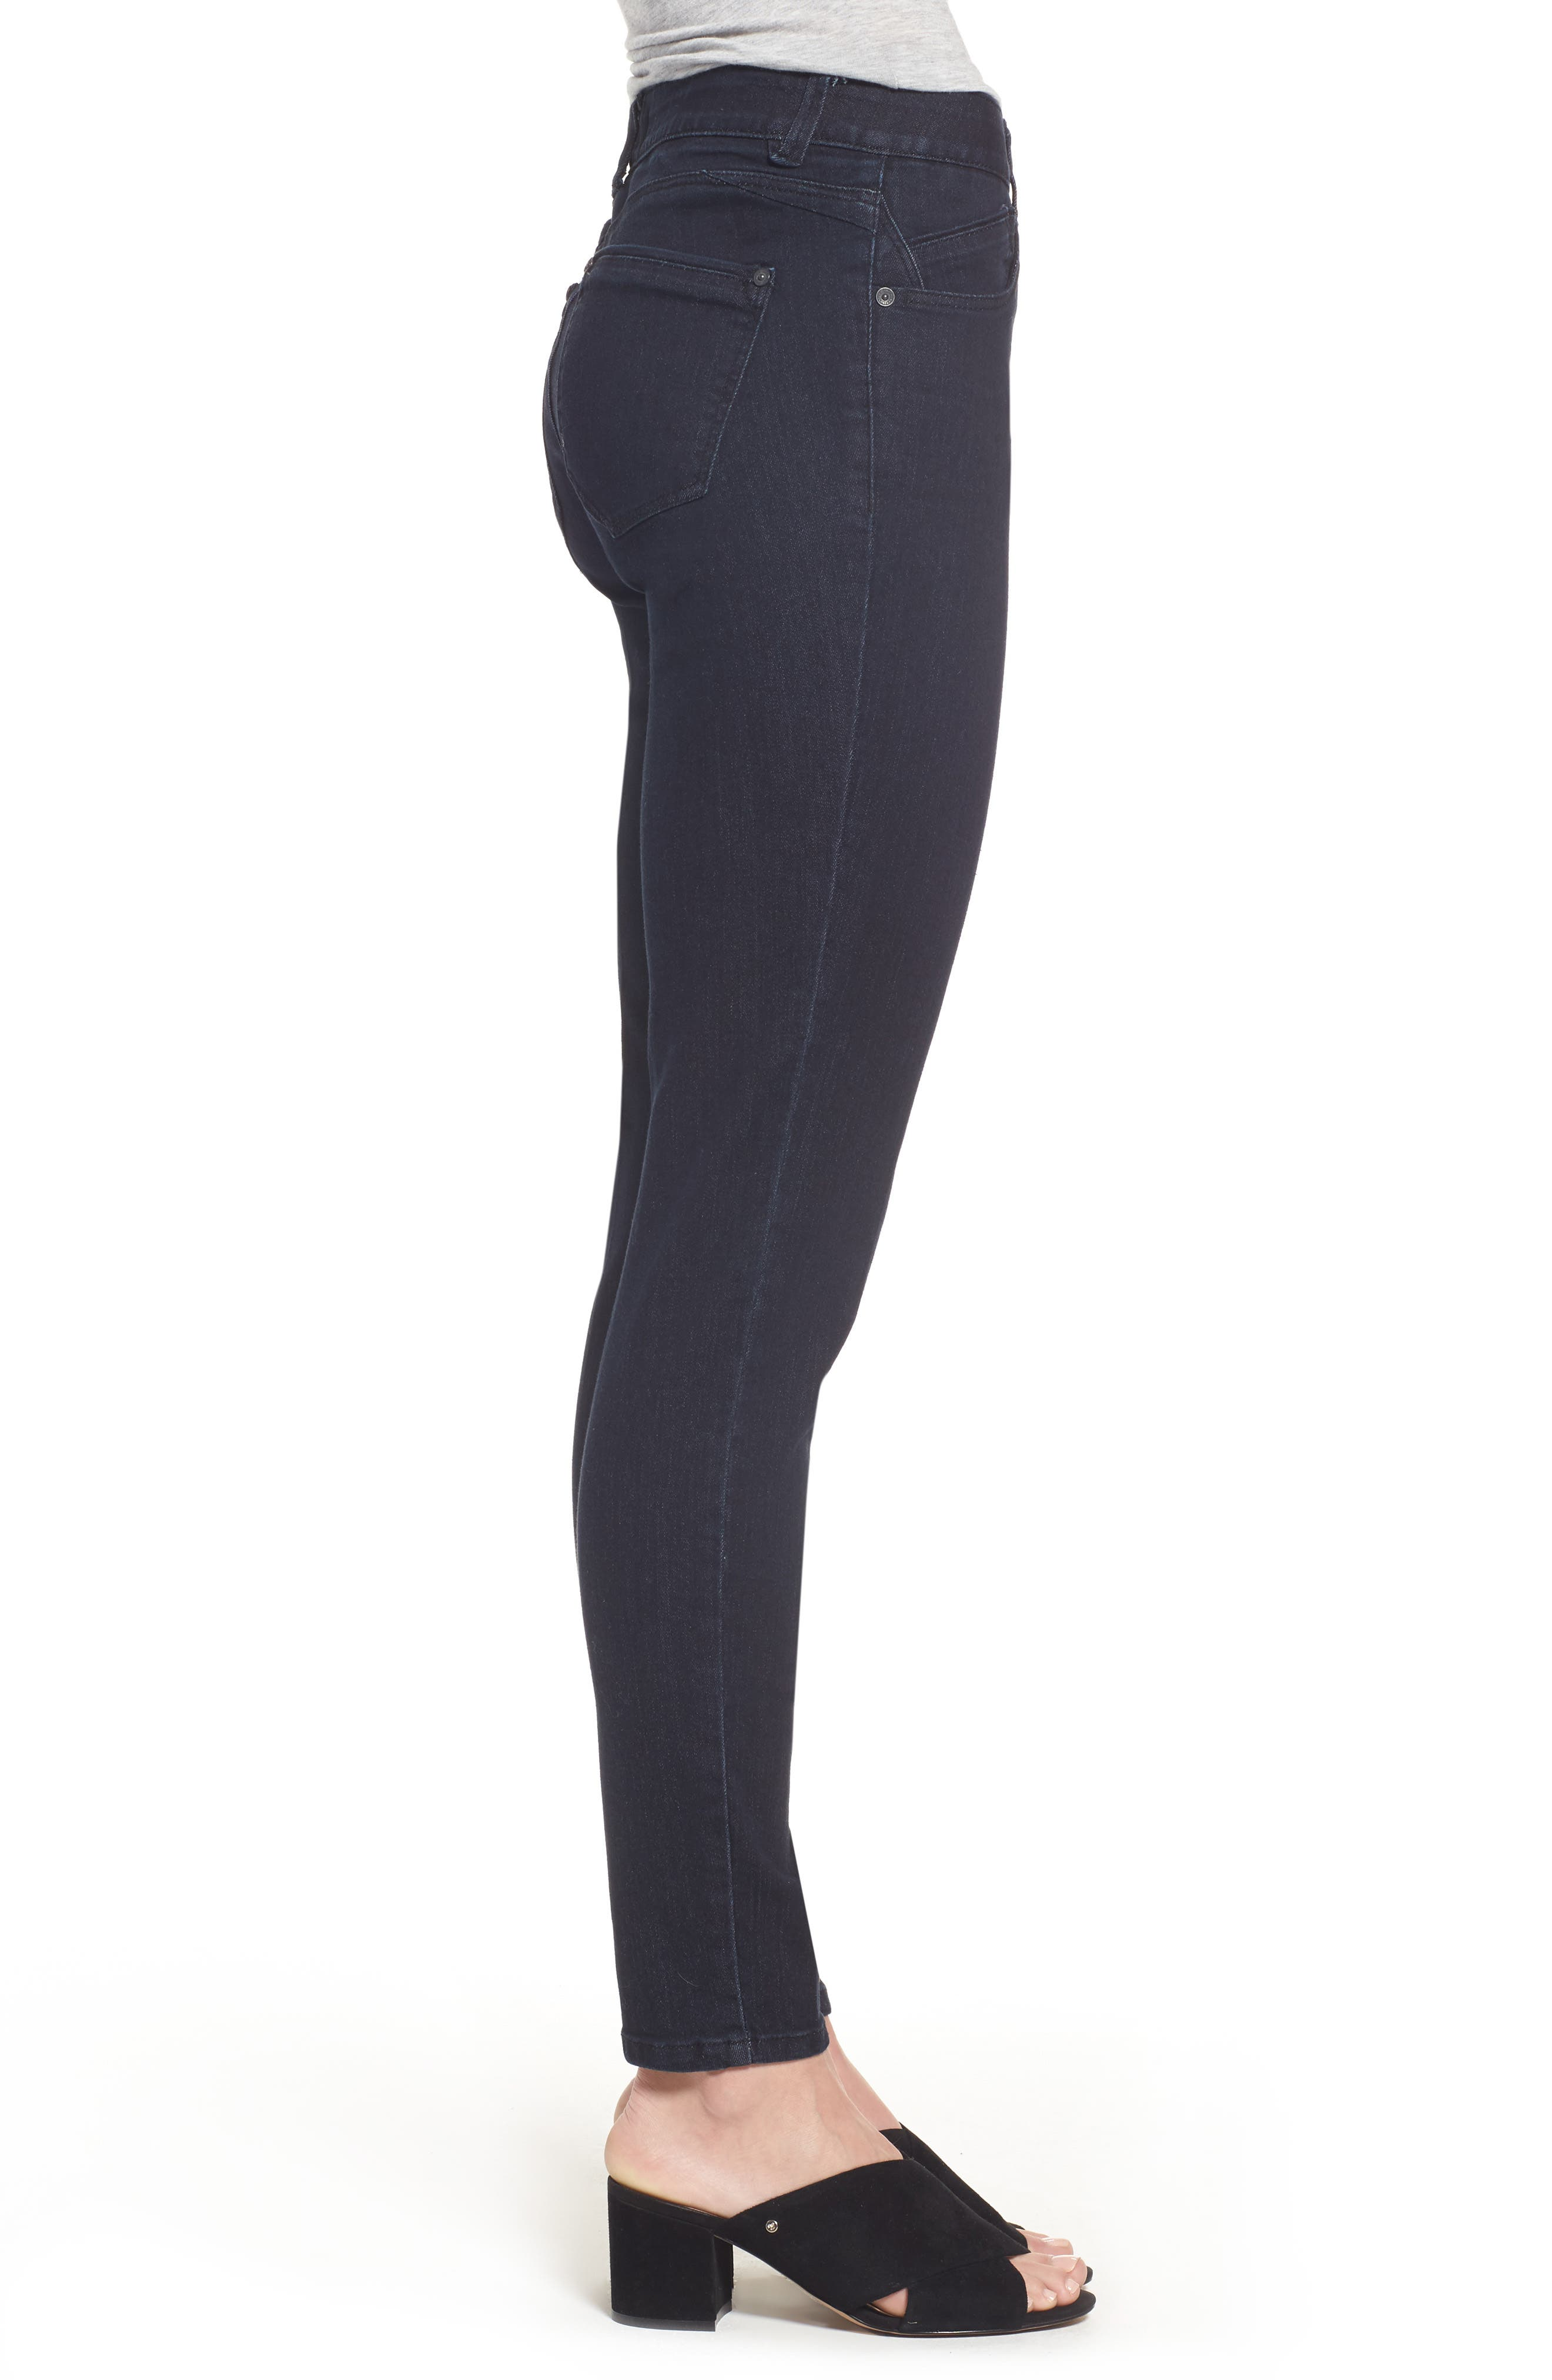 Alternate Image 3  - Wit & Wisdom Ab-solution Stretch Skinny Jeans (Regular & Petite)(Nordstrom Exclusive)